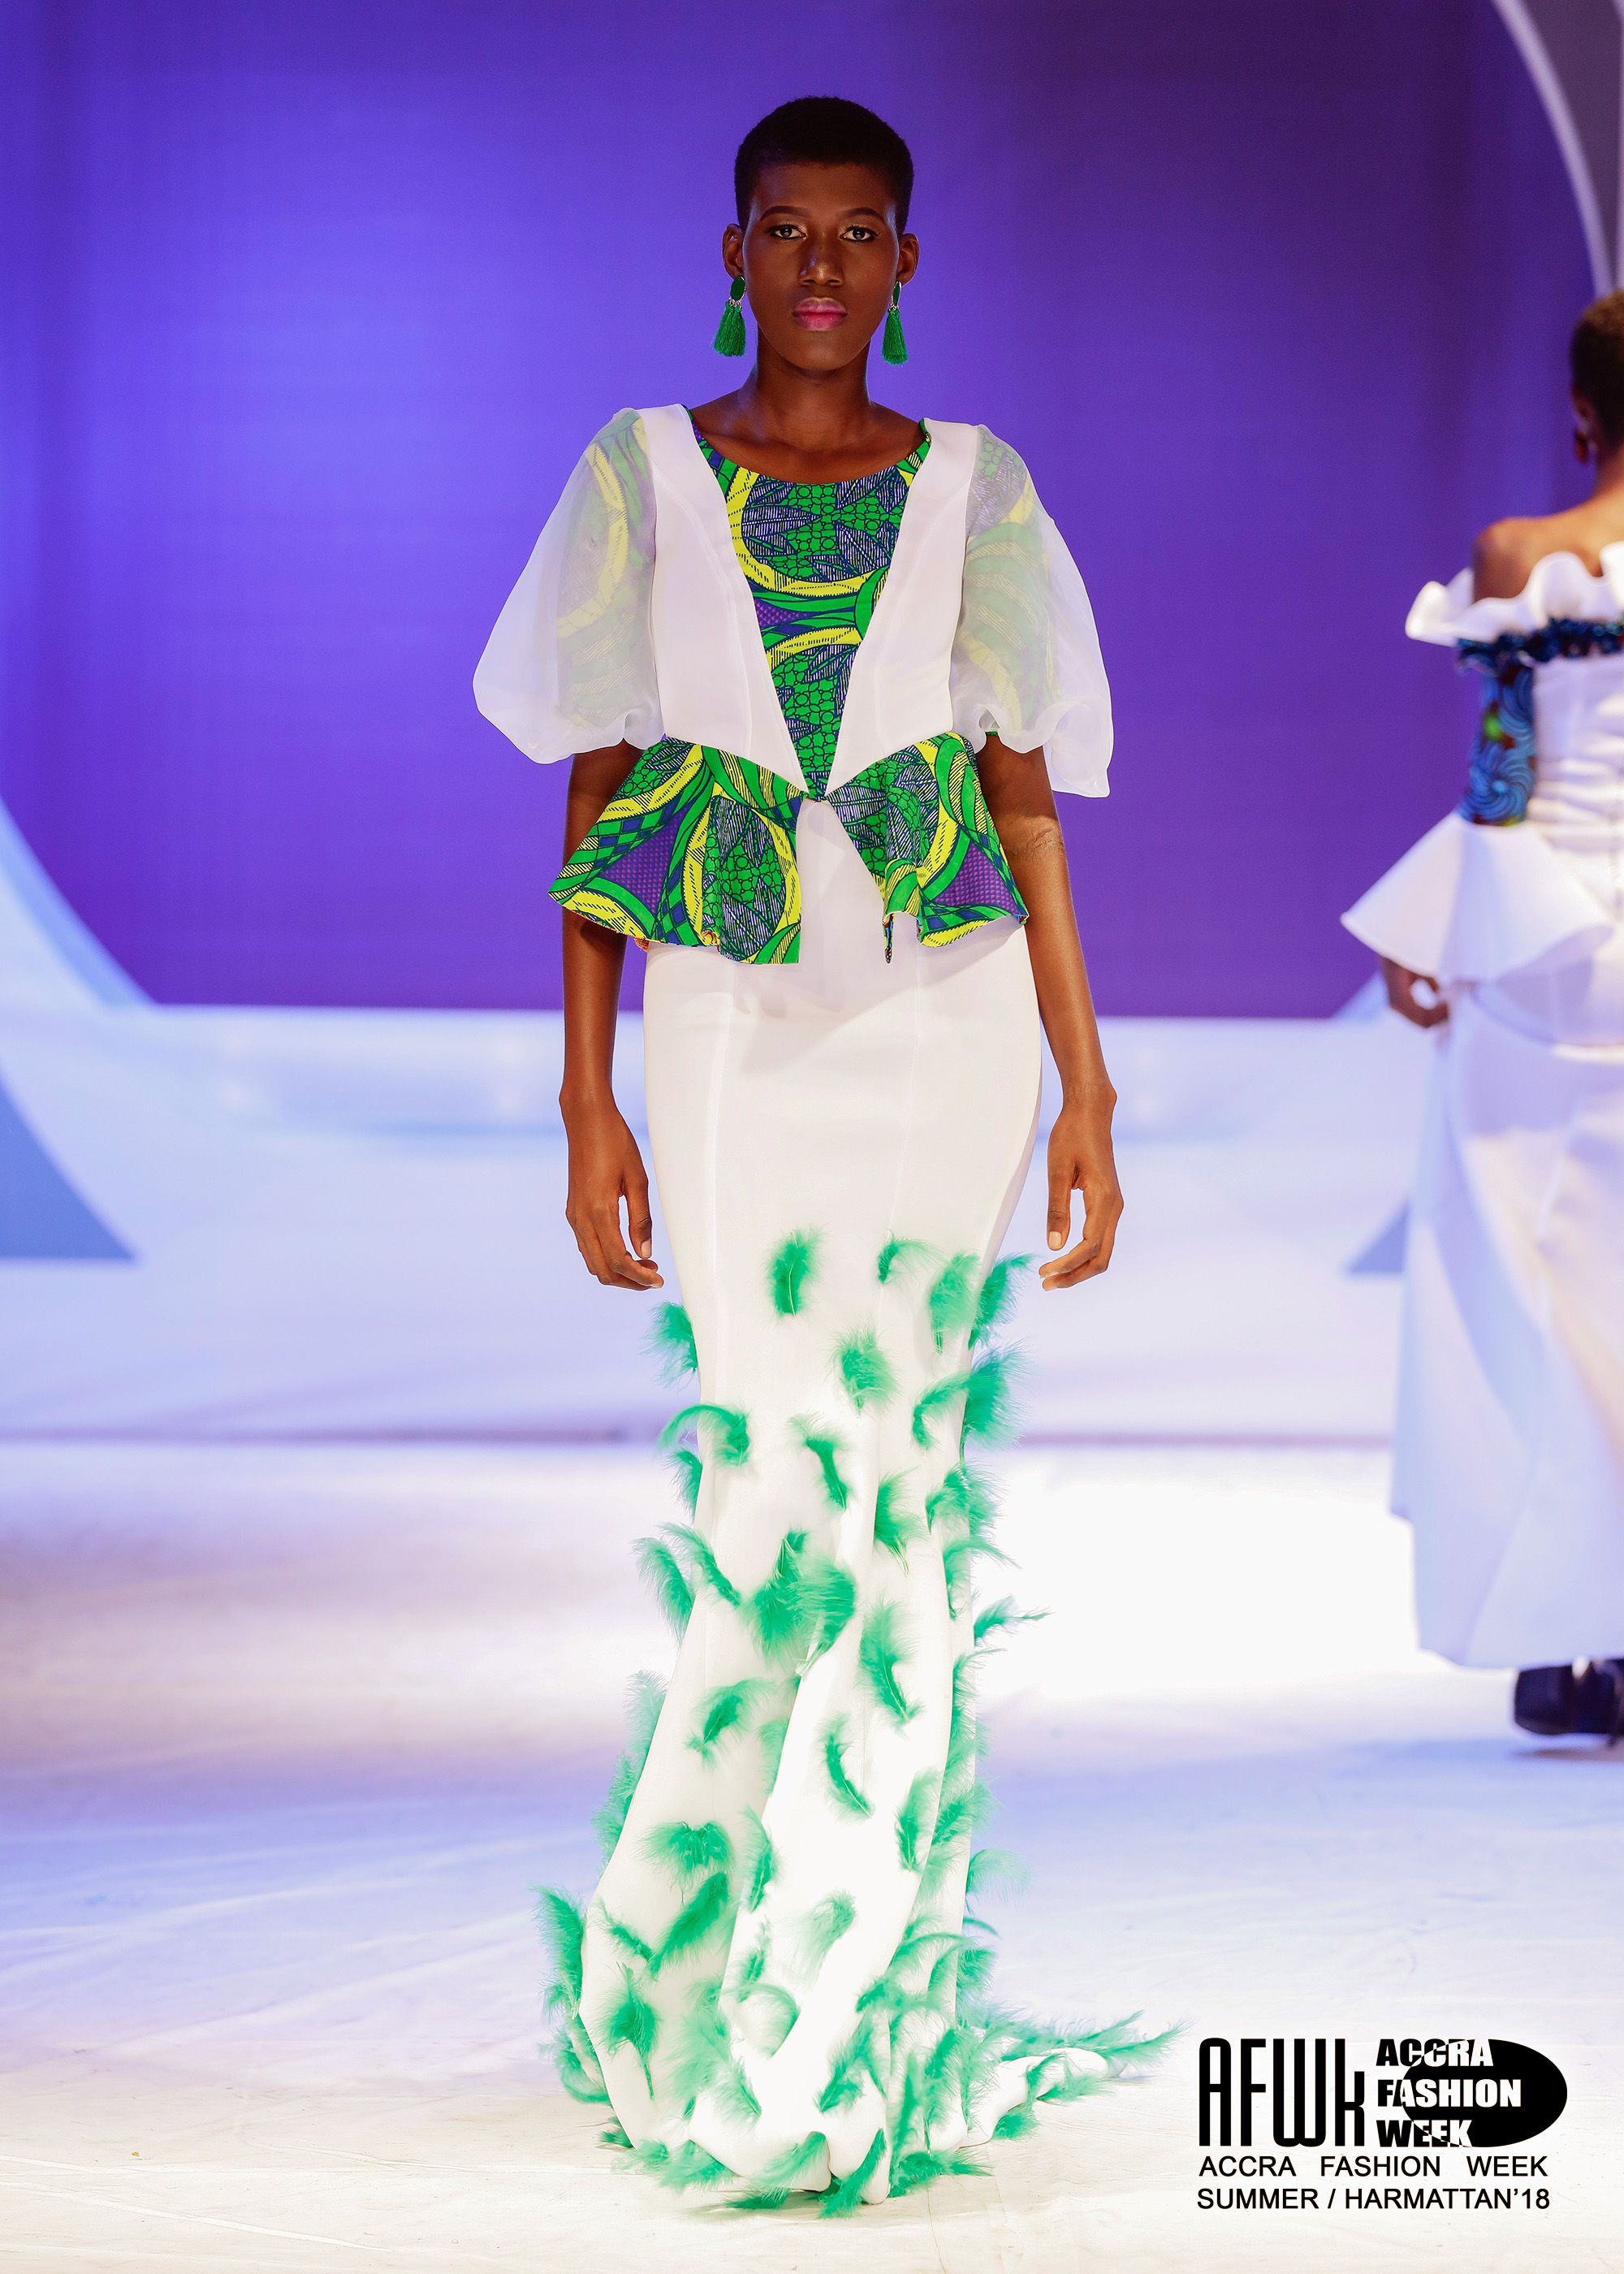 Adiya Designs Ghana Accra Fashion Week 2018 Summer Harmattan Fashion Fashion Week Fashion Week 2018